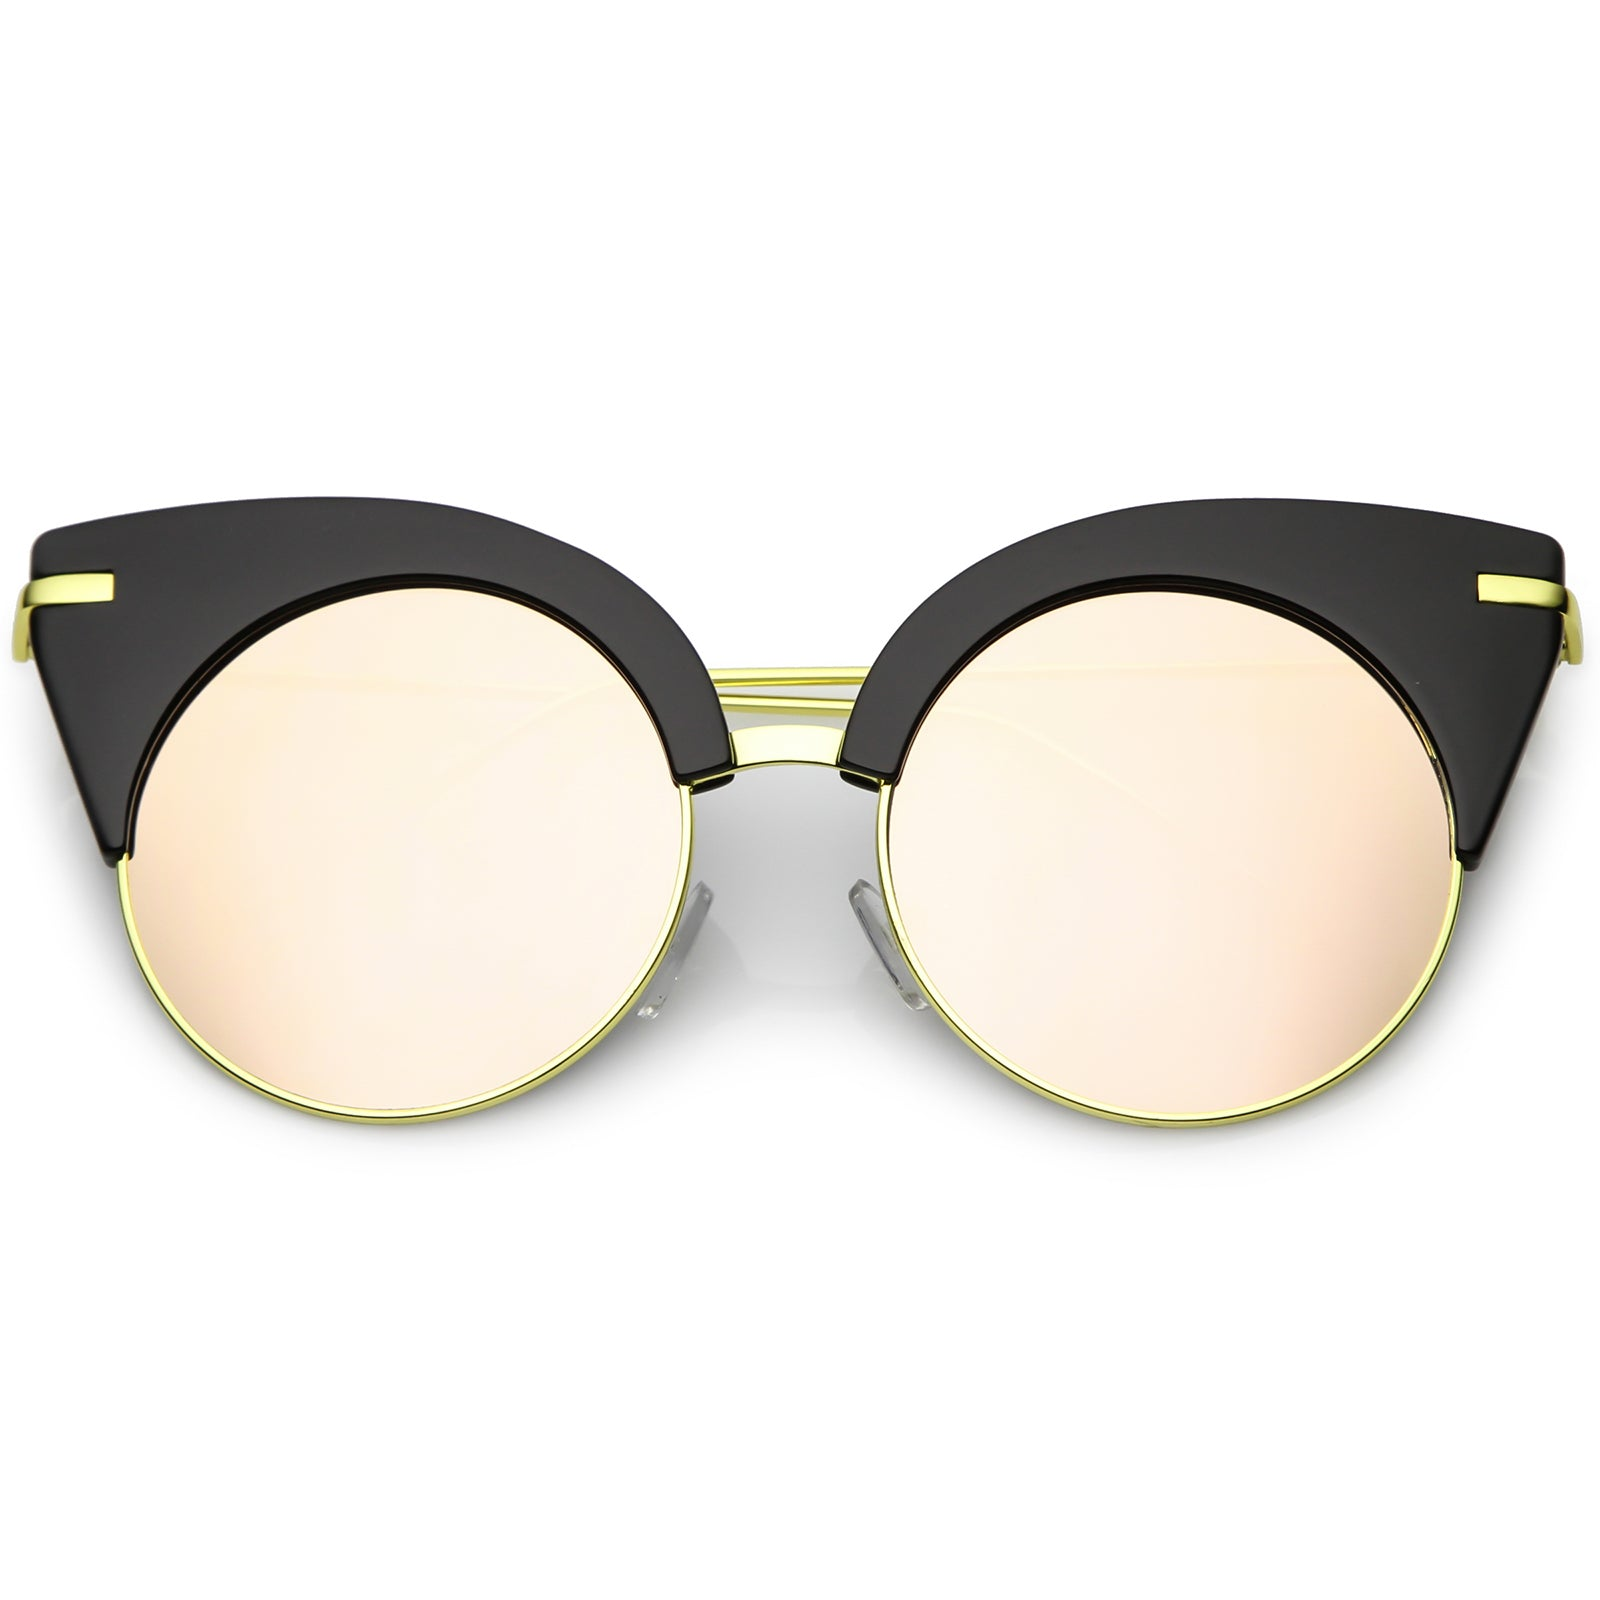 fd89ca0950 Oversize Half Frame Cat Eye Sunglasses Ultra Slim Arms Round ...